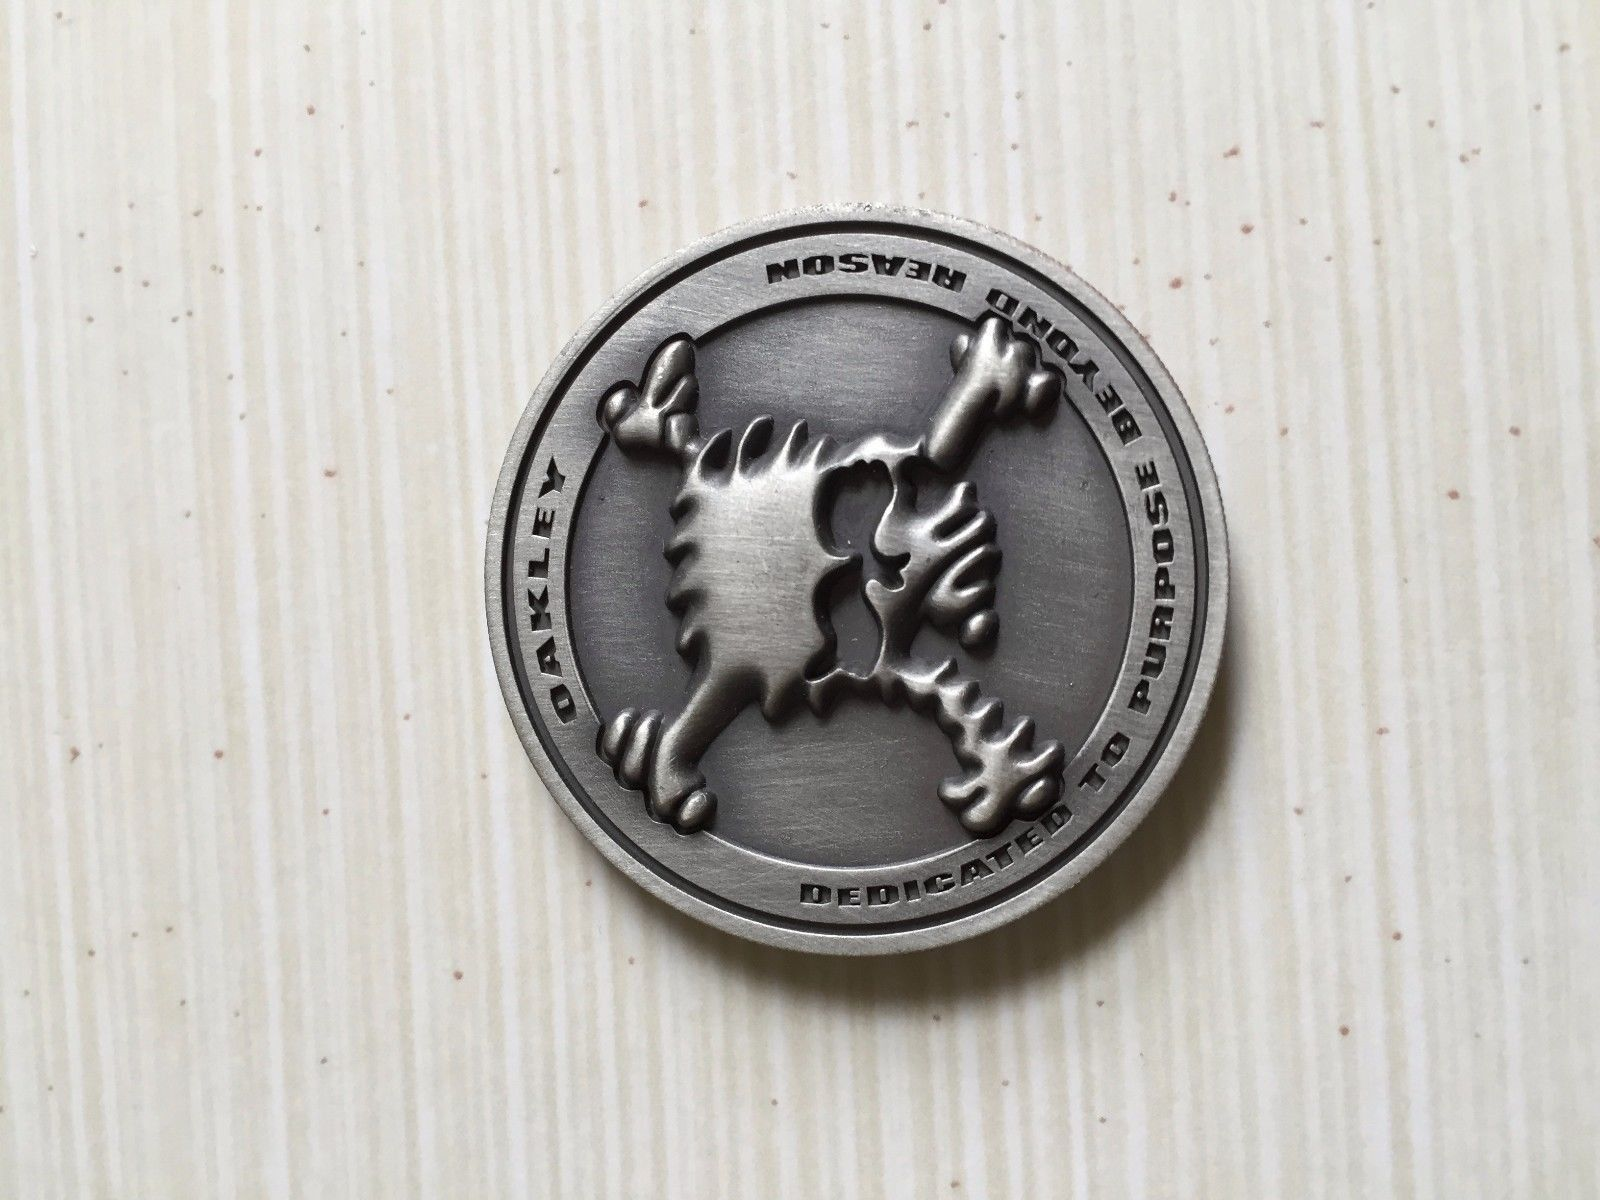 Juliet X Metal Collector's Coin - Great Condition! - s-l1600-6.jpg